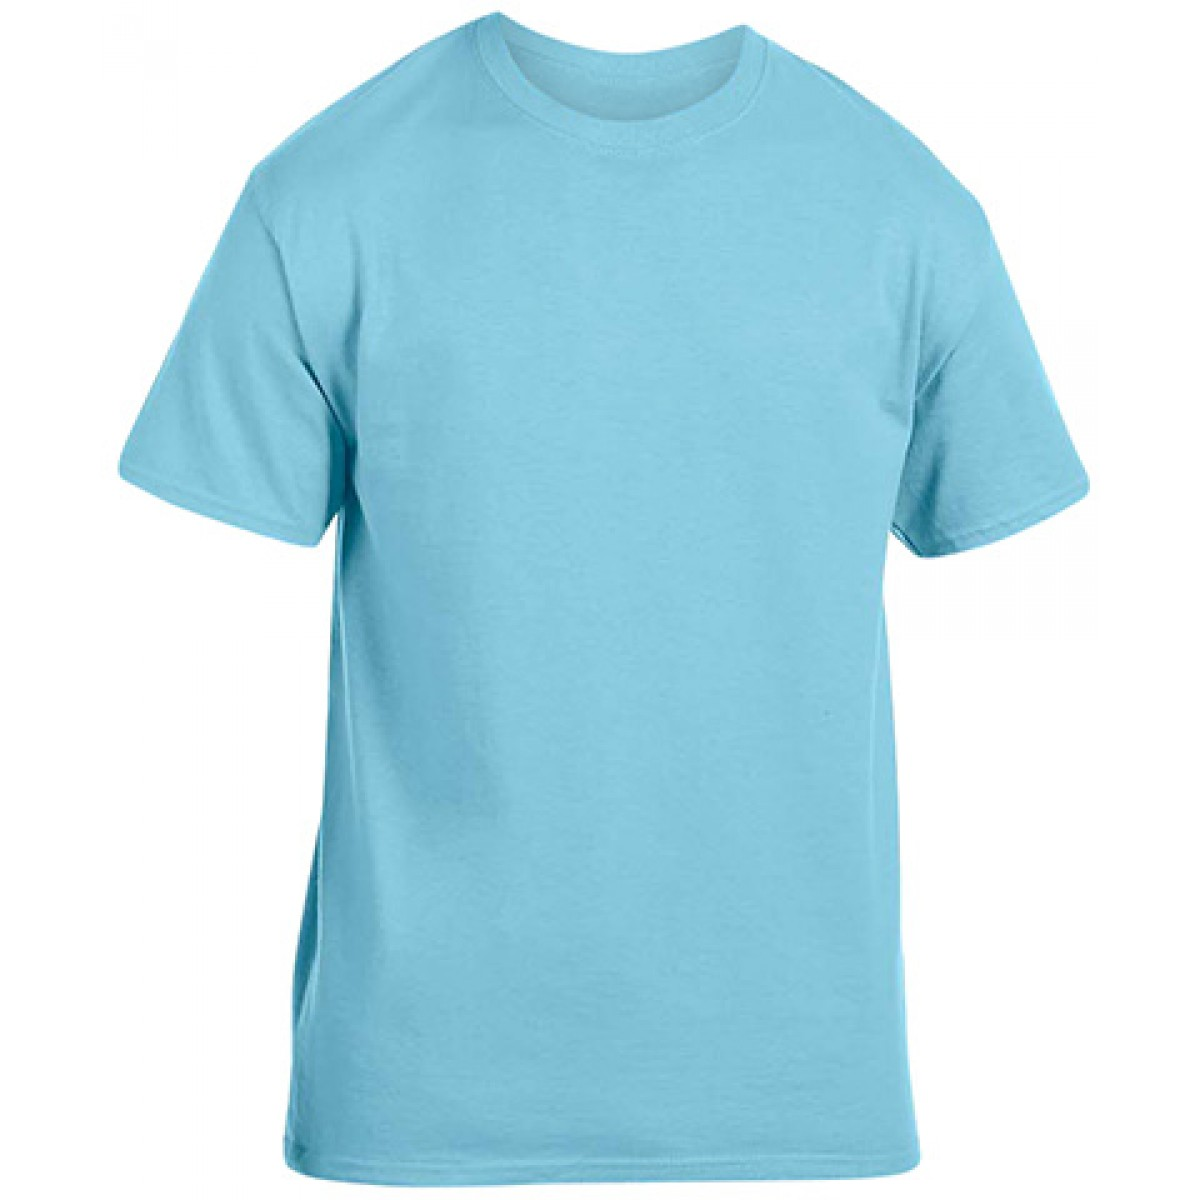 Soft 100% Cotton T-Shirt-Sky Blue-L